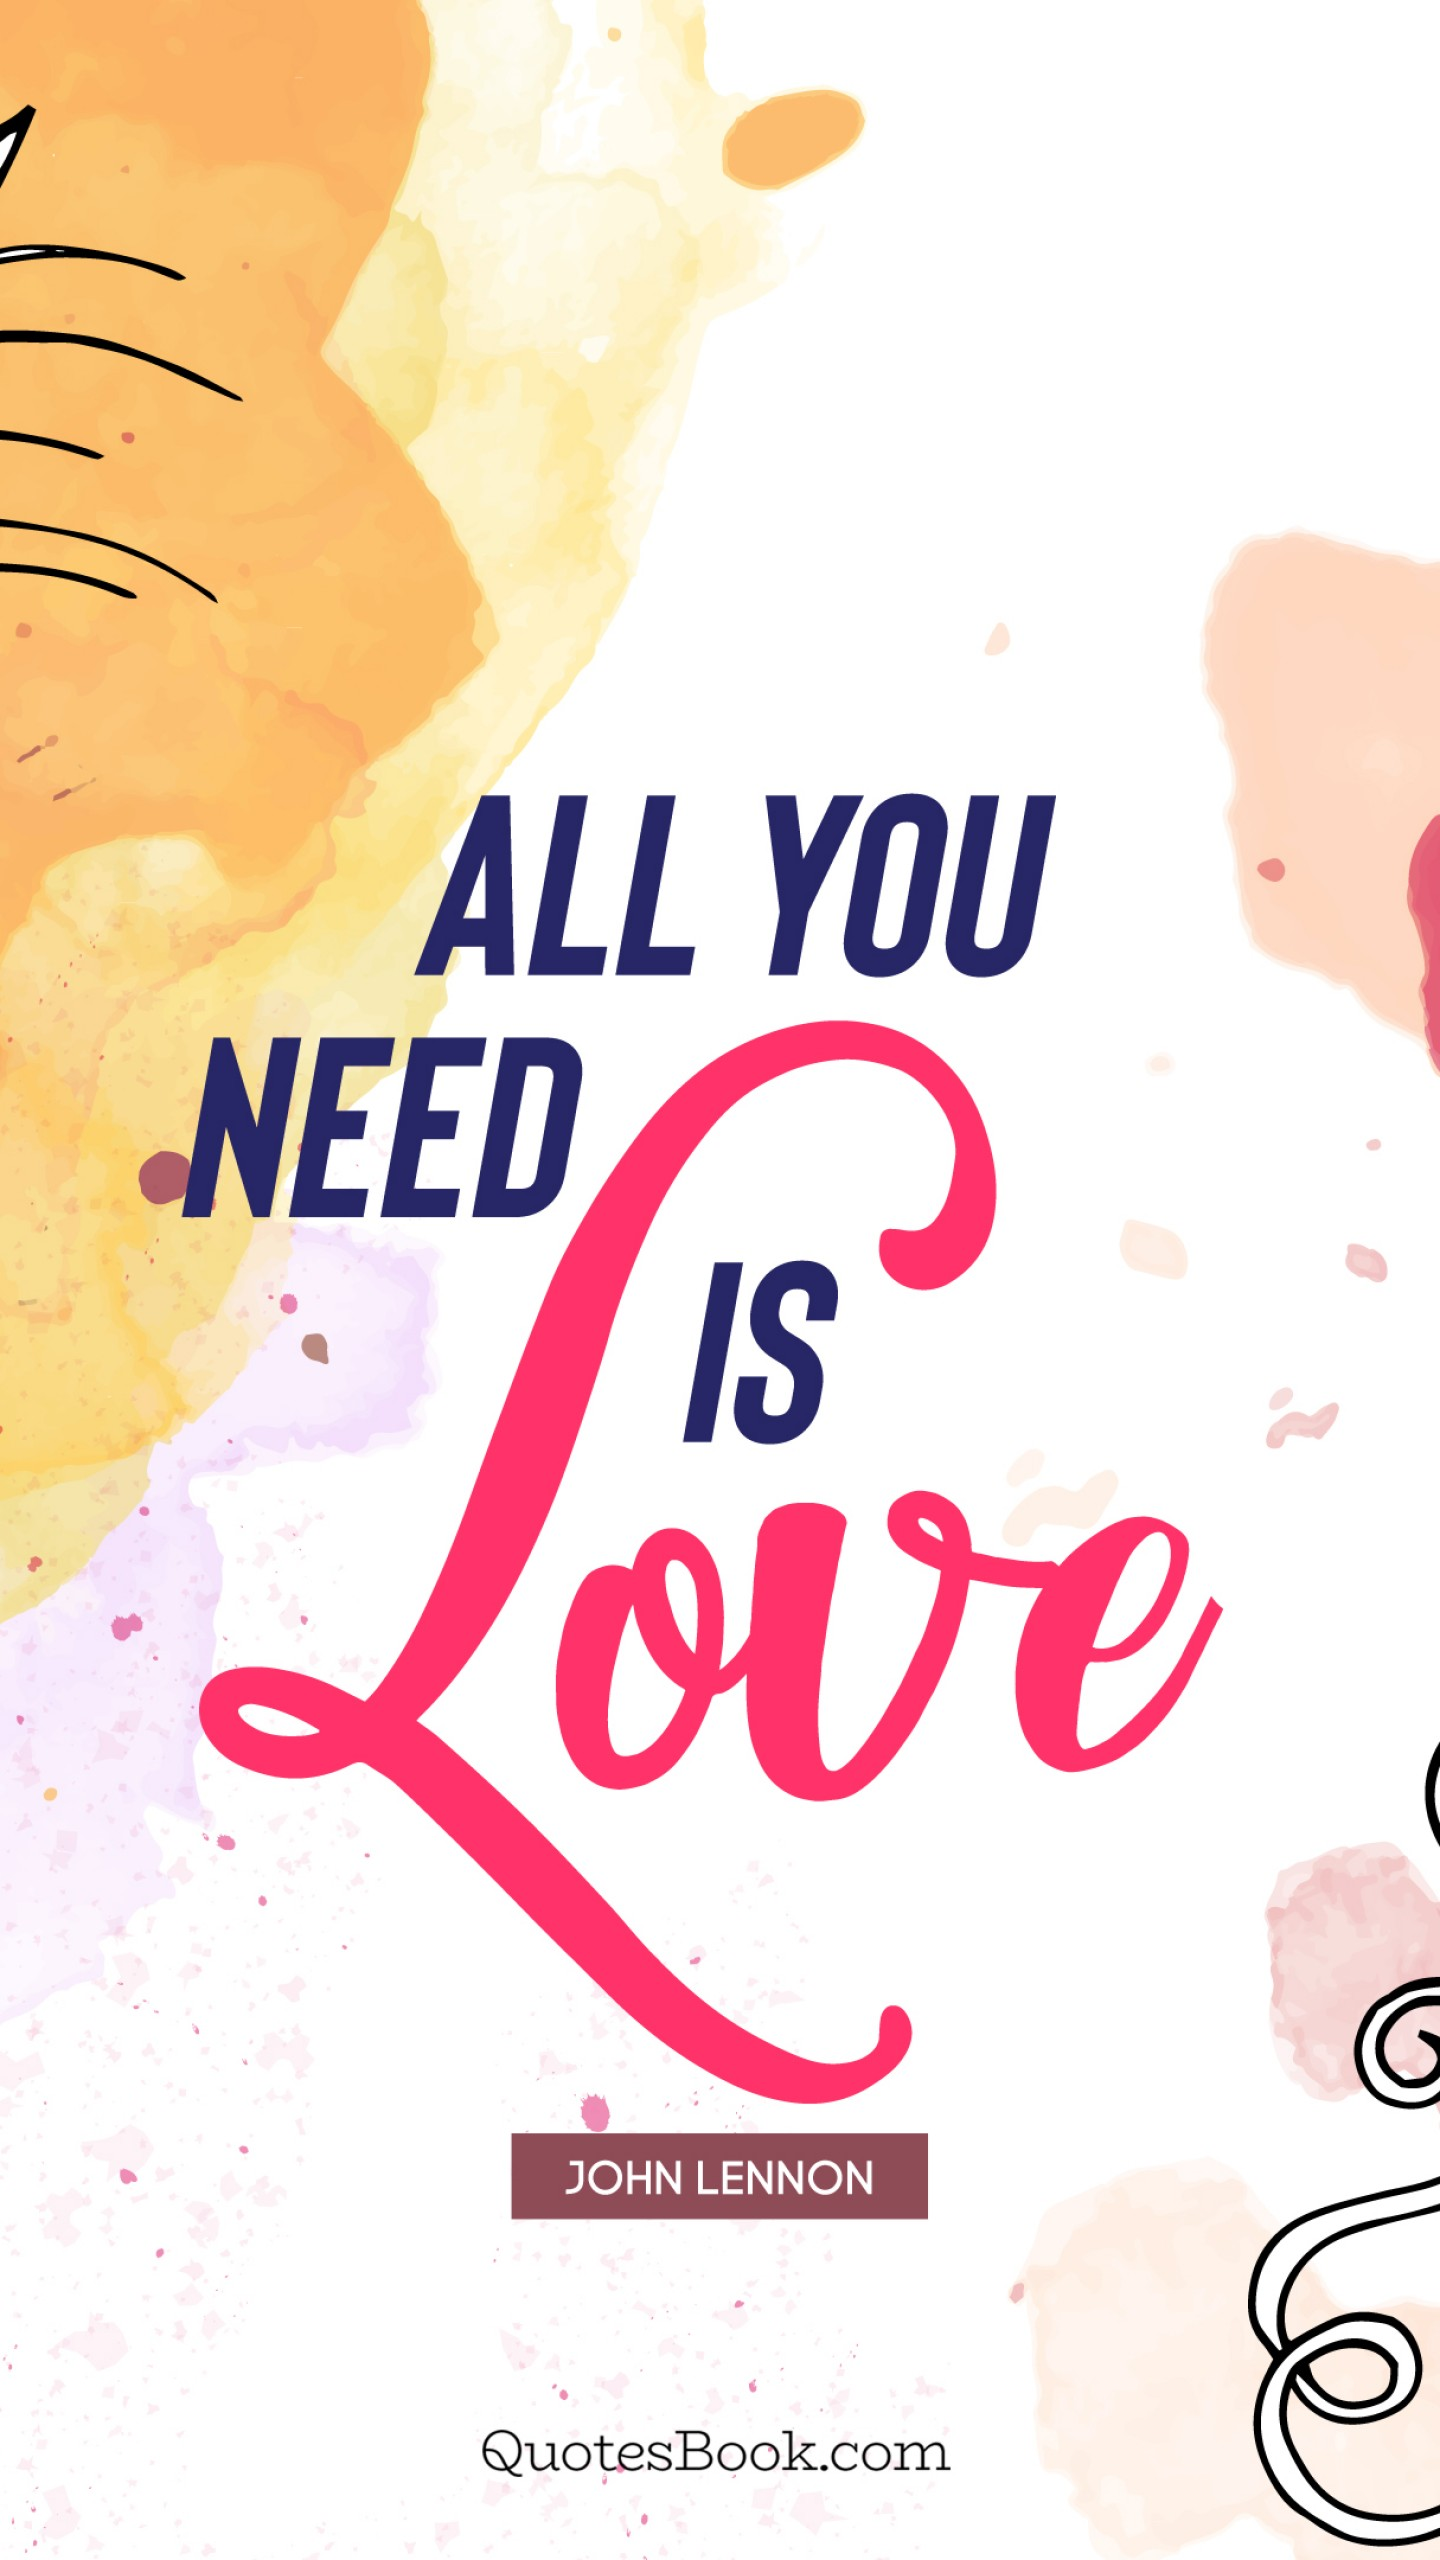 All You Need Is Love Quote By John Lennon Quotesbook